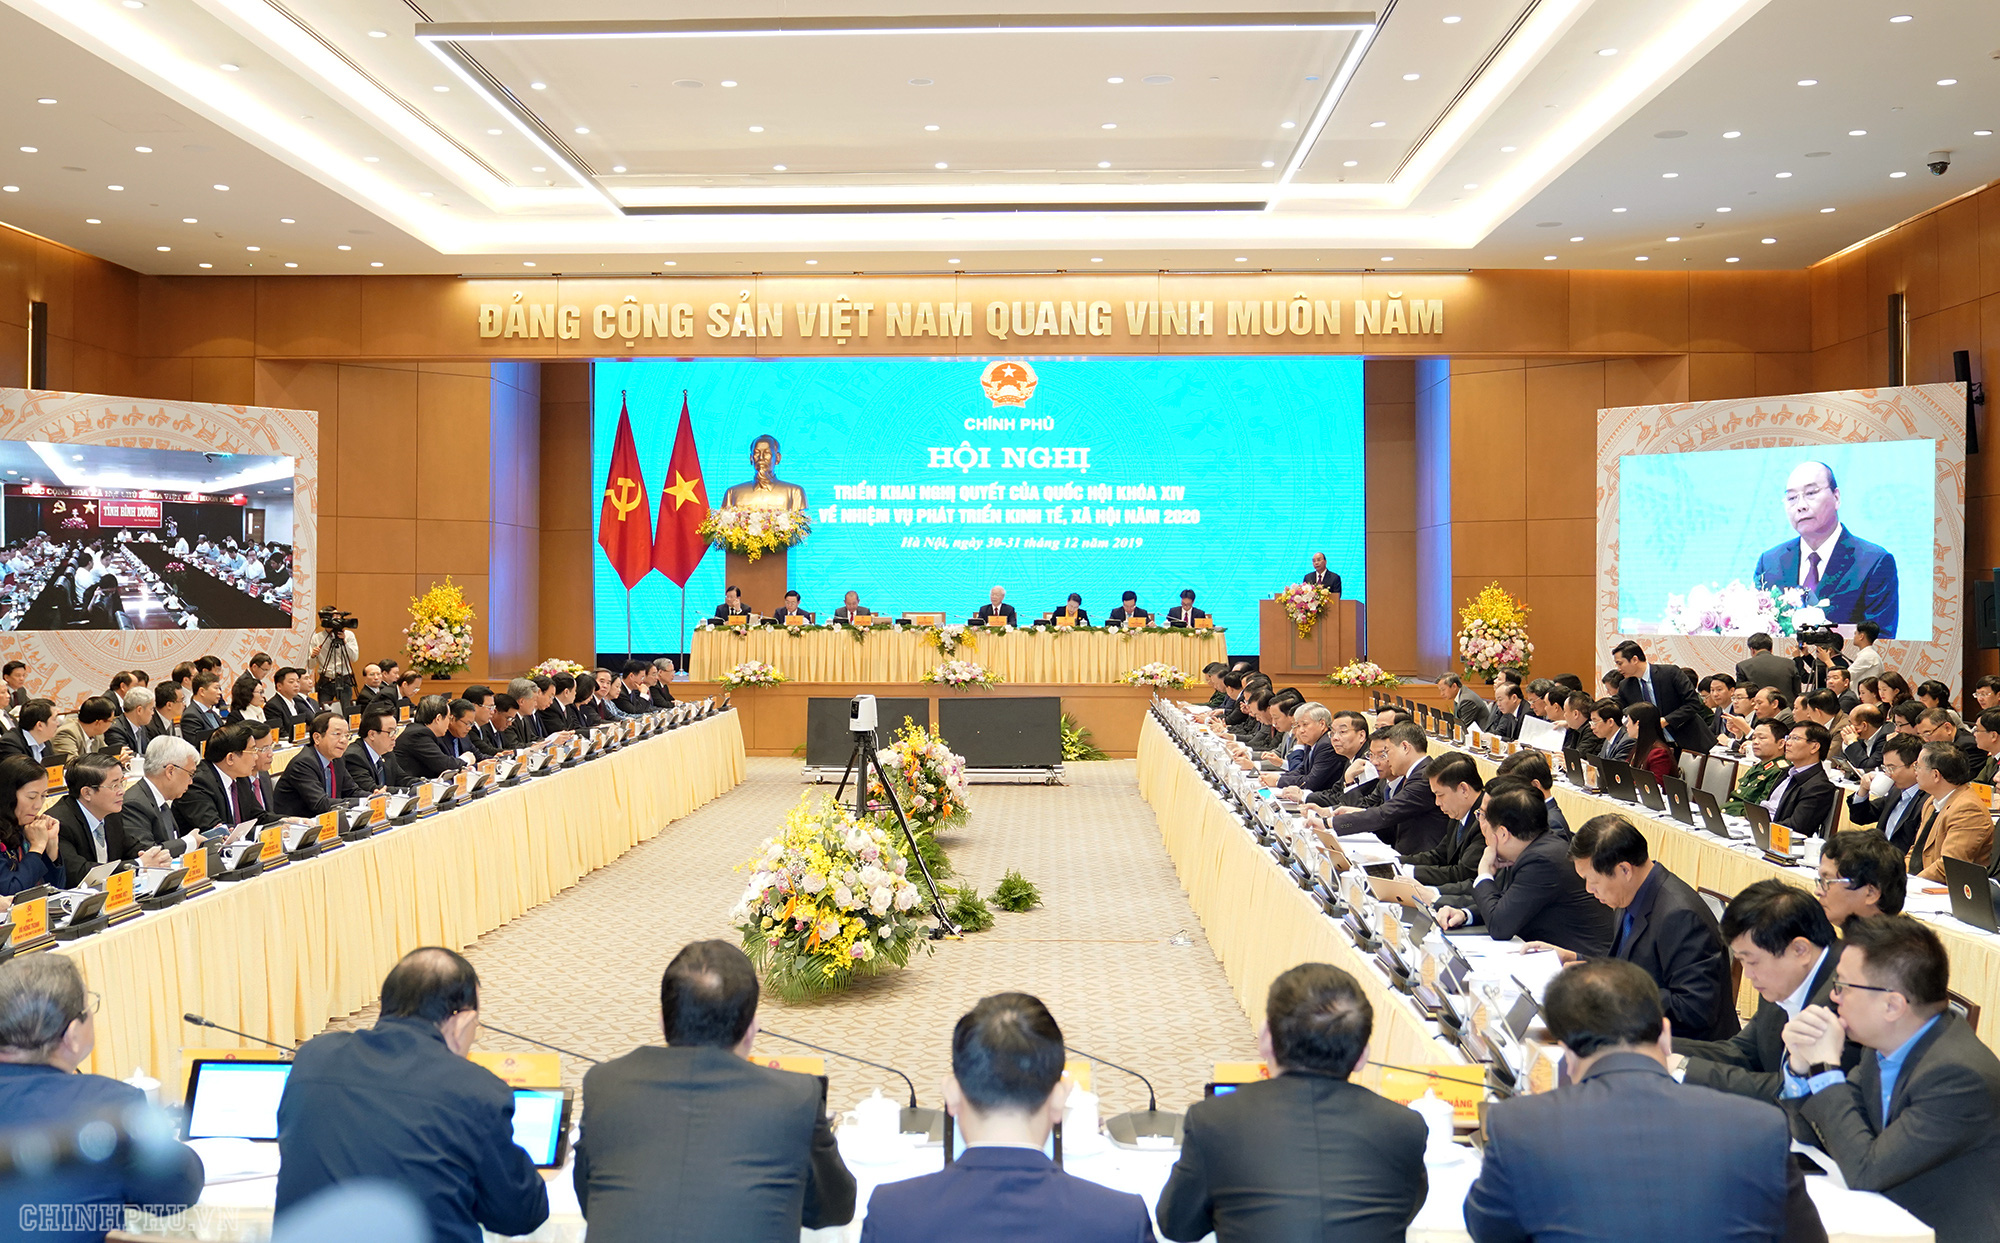 Delegates attend a government teleconference in Hanoi on December 30, 2019. Photo: Vietnam Government Portal